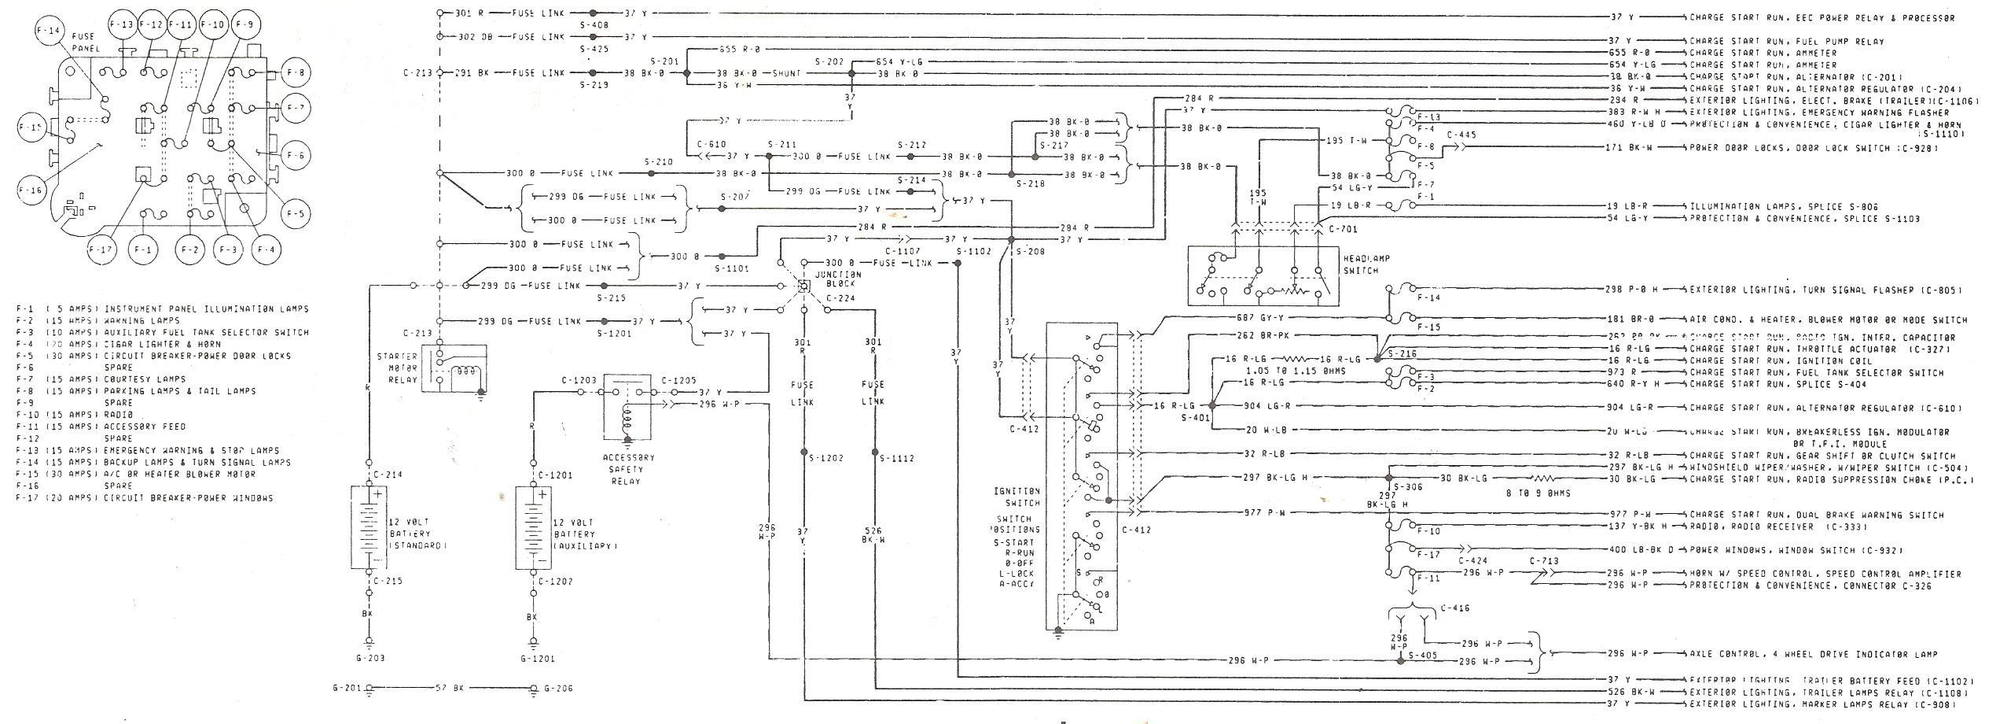 hight resolution of  86 f150 radio wiring diagram wiring on my 86 ford f150 ford truck enthusiasts forums